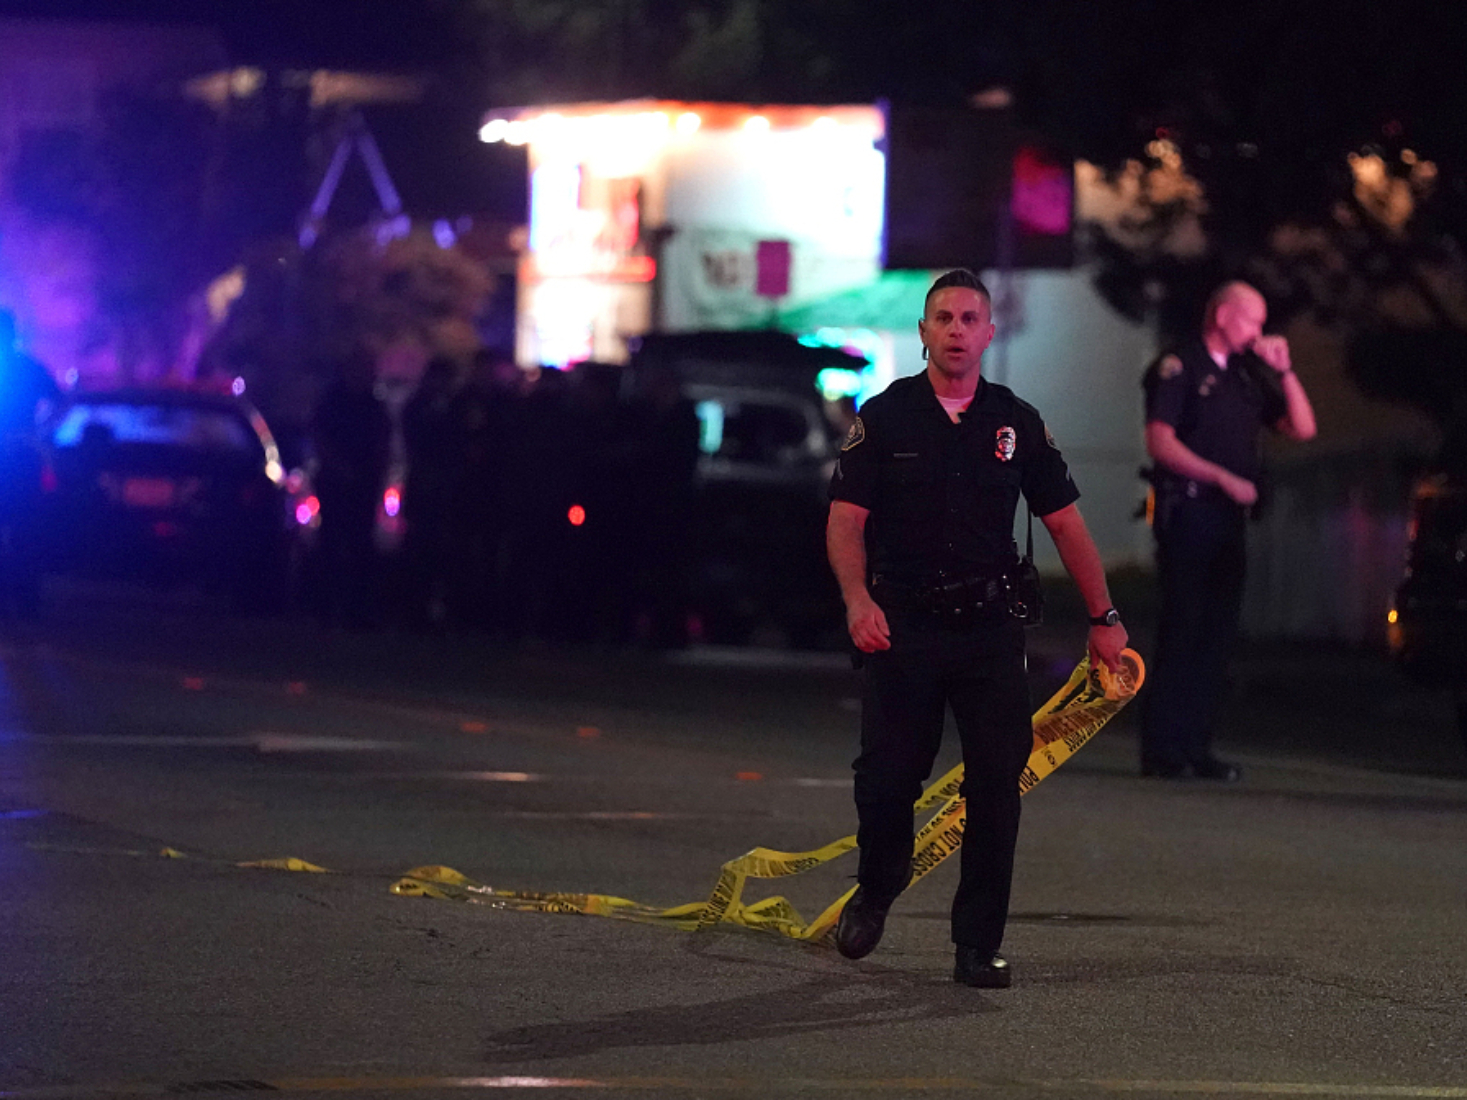 3 killed, 9 injured in shooting at California home